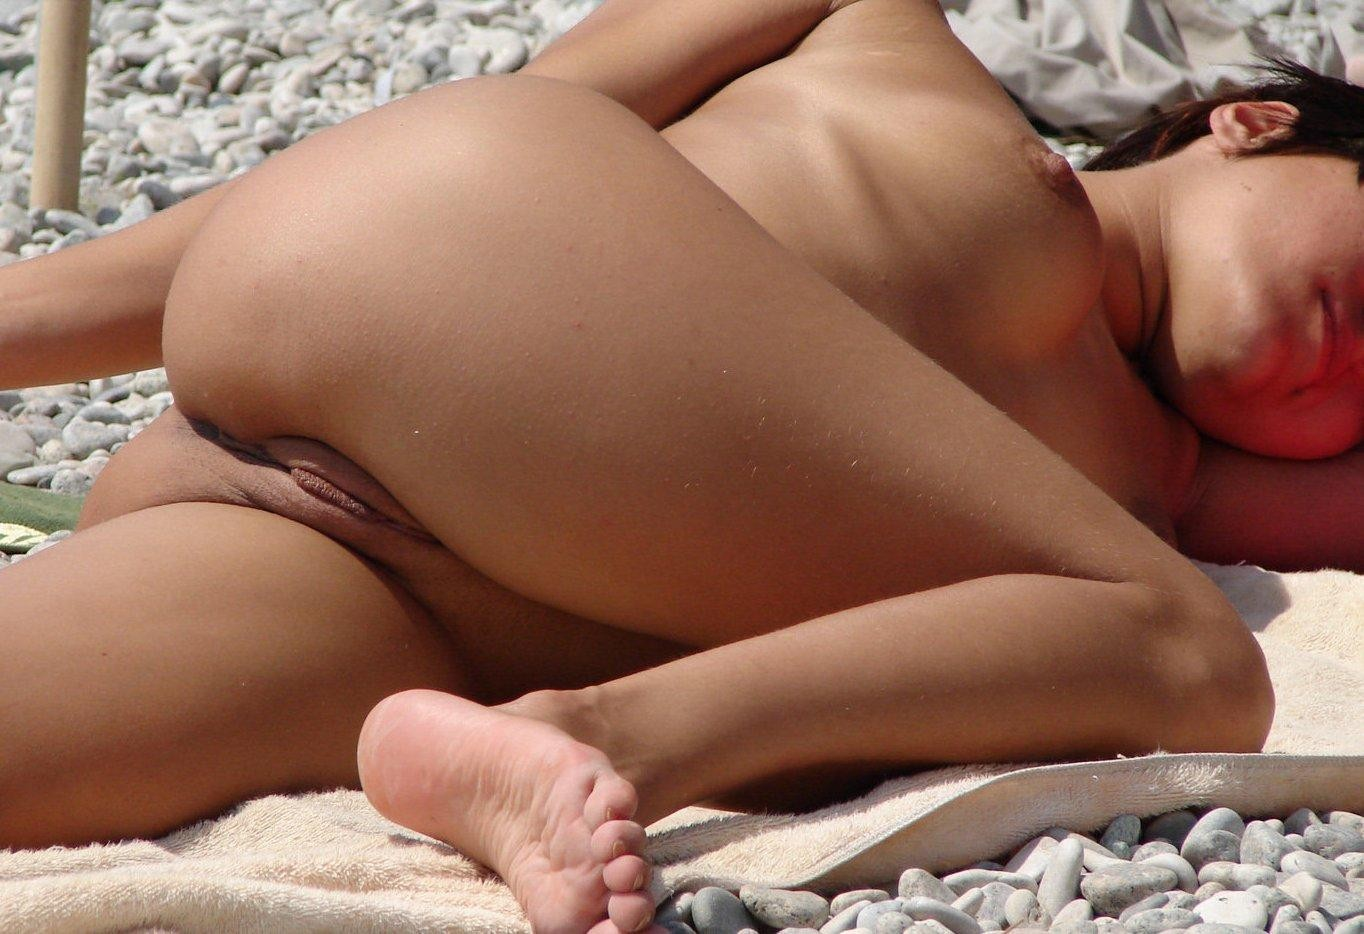 girl-sexy-nude-beach-masterbating-sex-parties-porn-videos